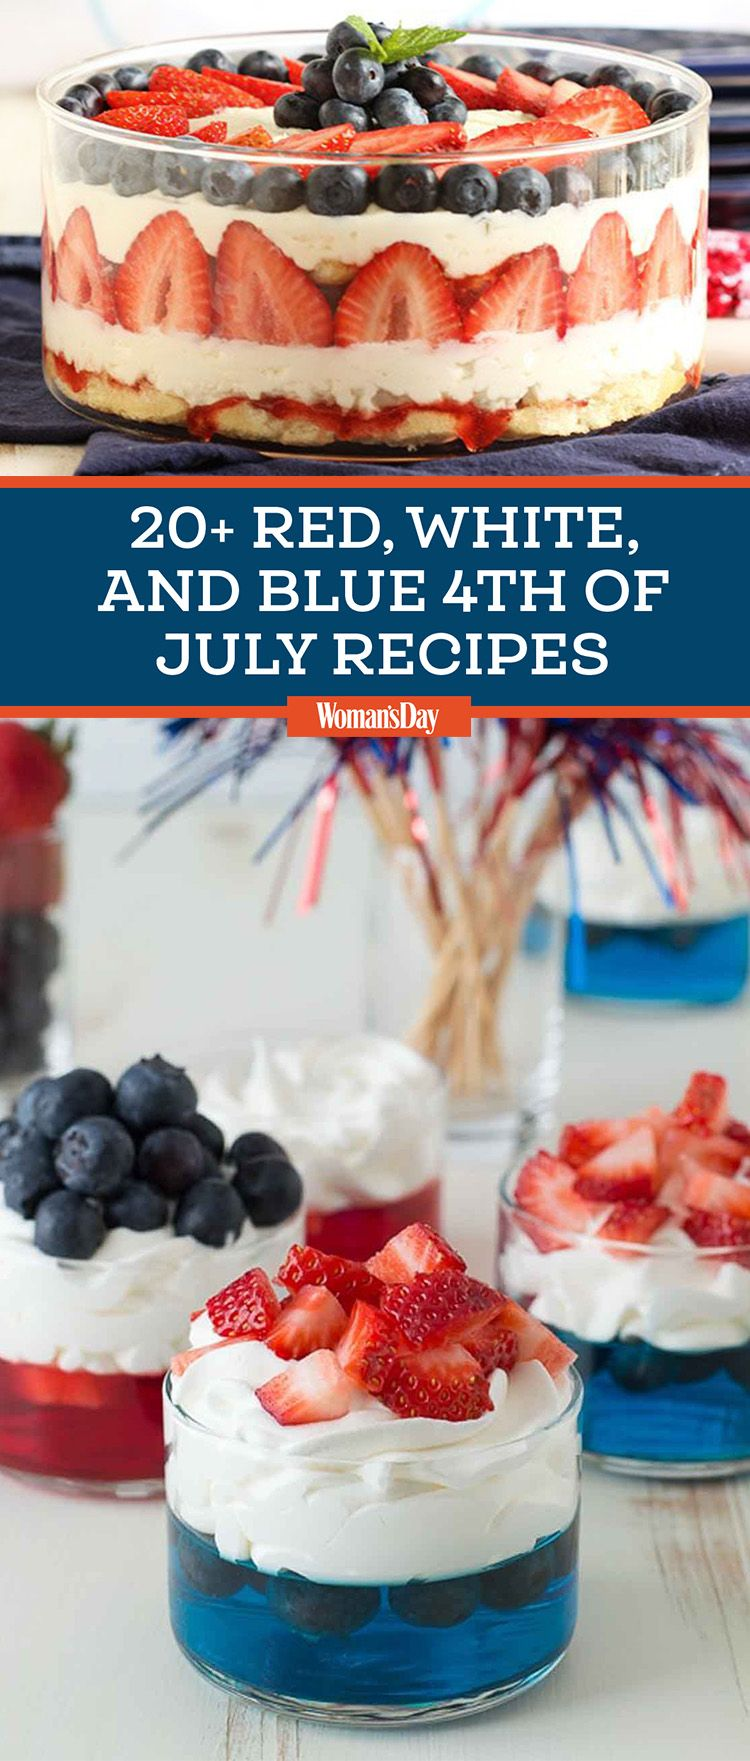 099969adf18 22 Easy 4th of July Recipes — Best Food Ideas   Snacks for Fourth of July